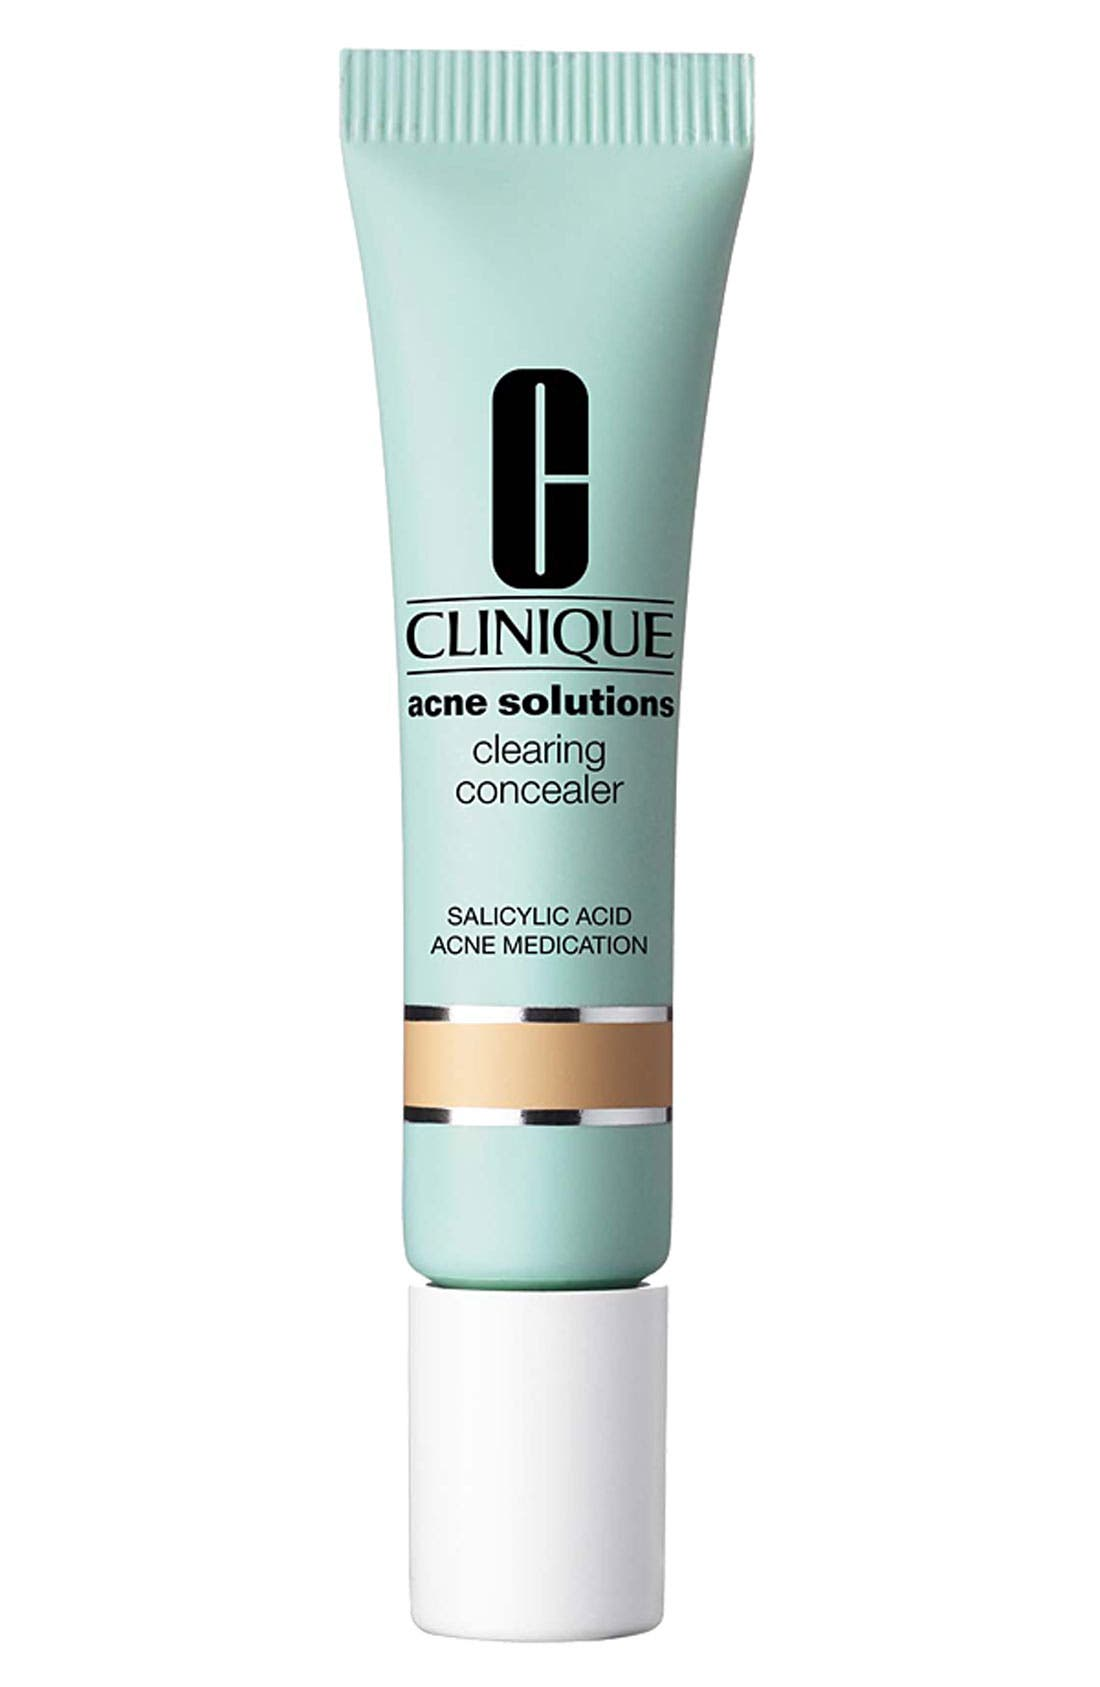 Clinique 'Acne Solutions' Clearing Concealer